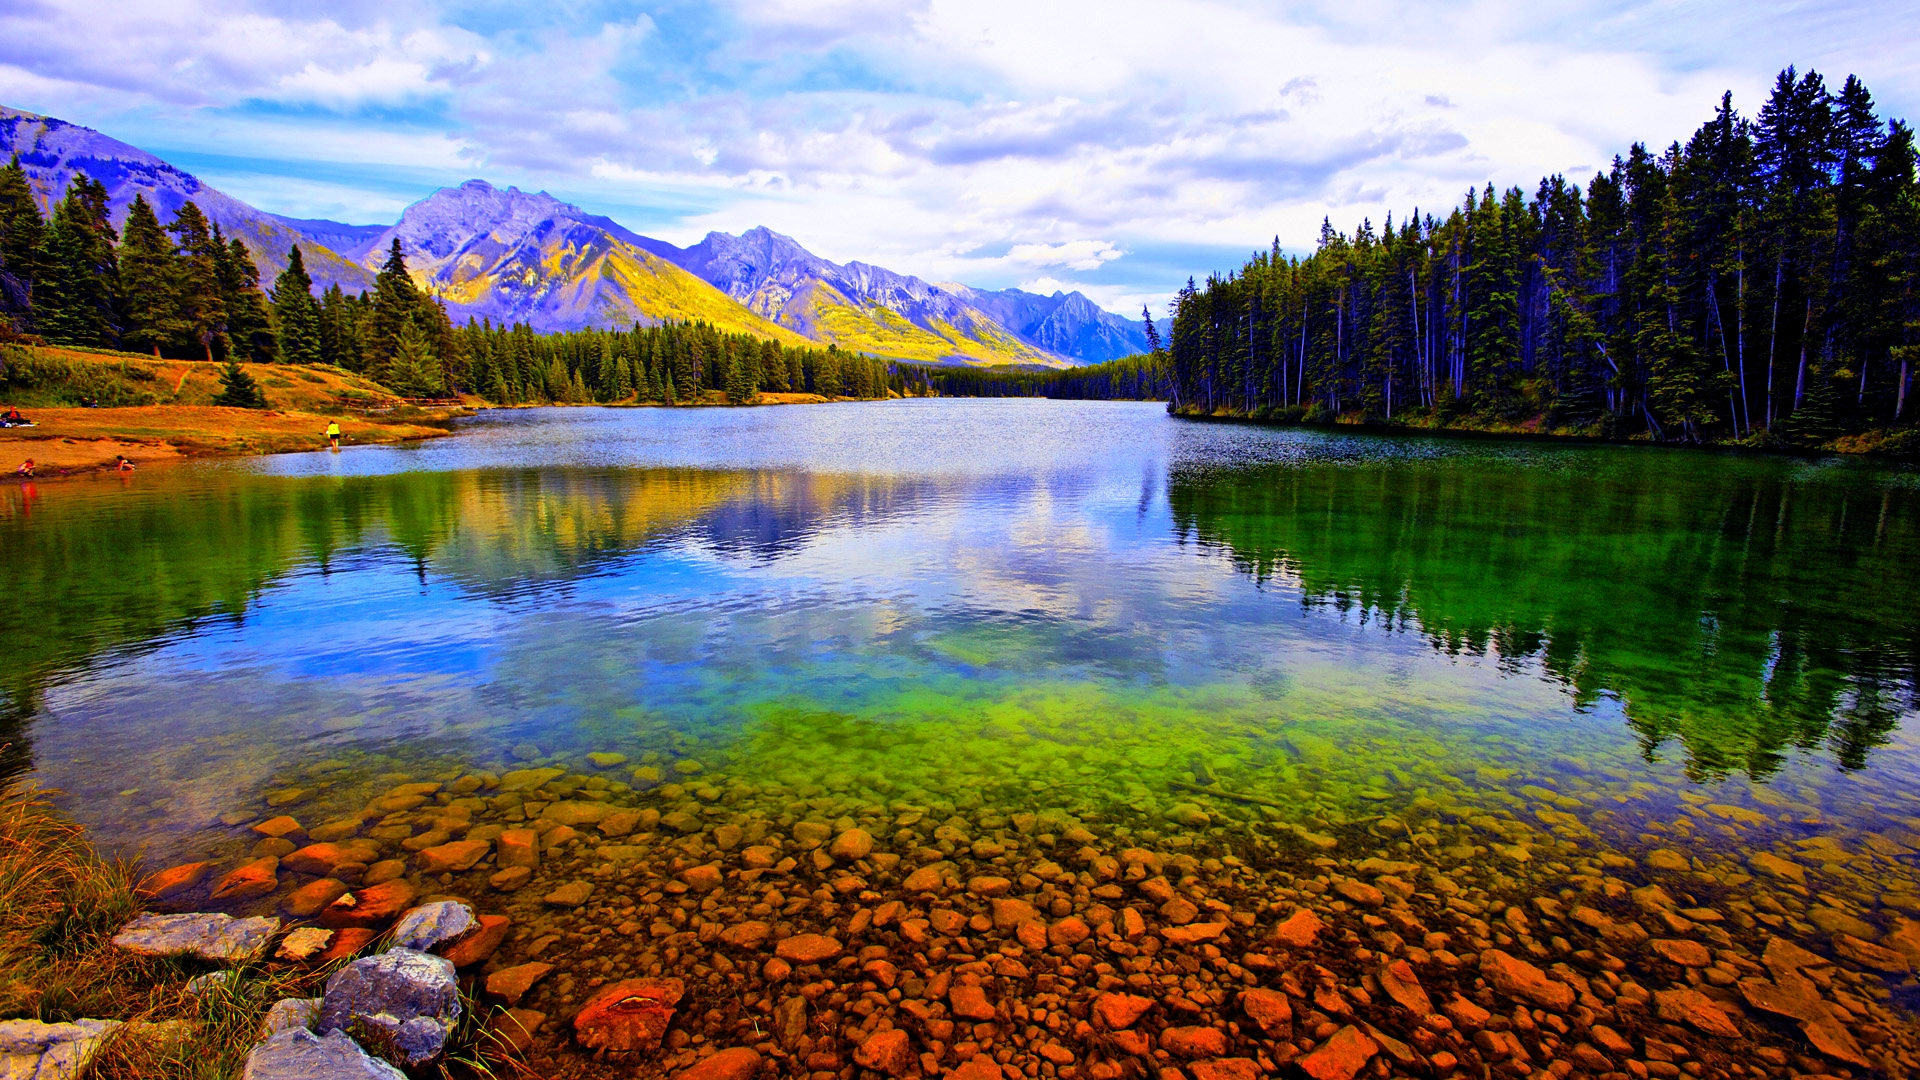 Stunning National Park Wallpaper 1920x1080px 897476 1920x1080